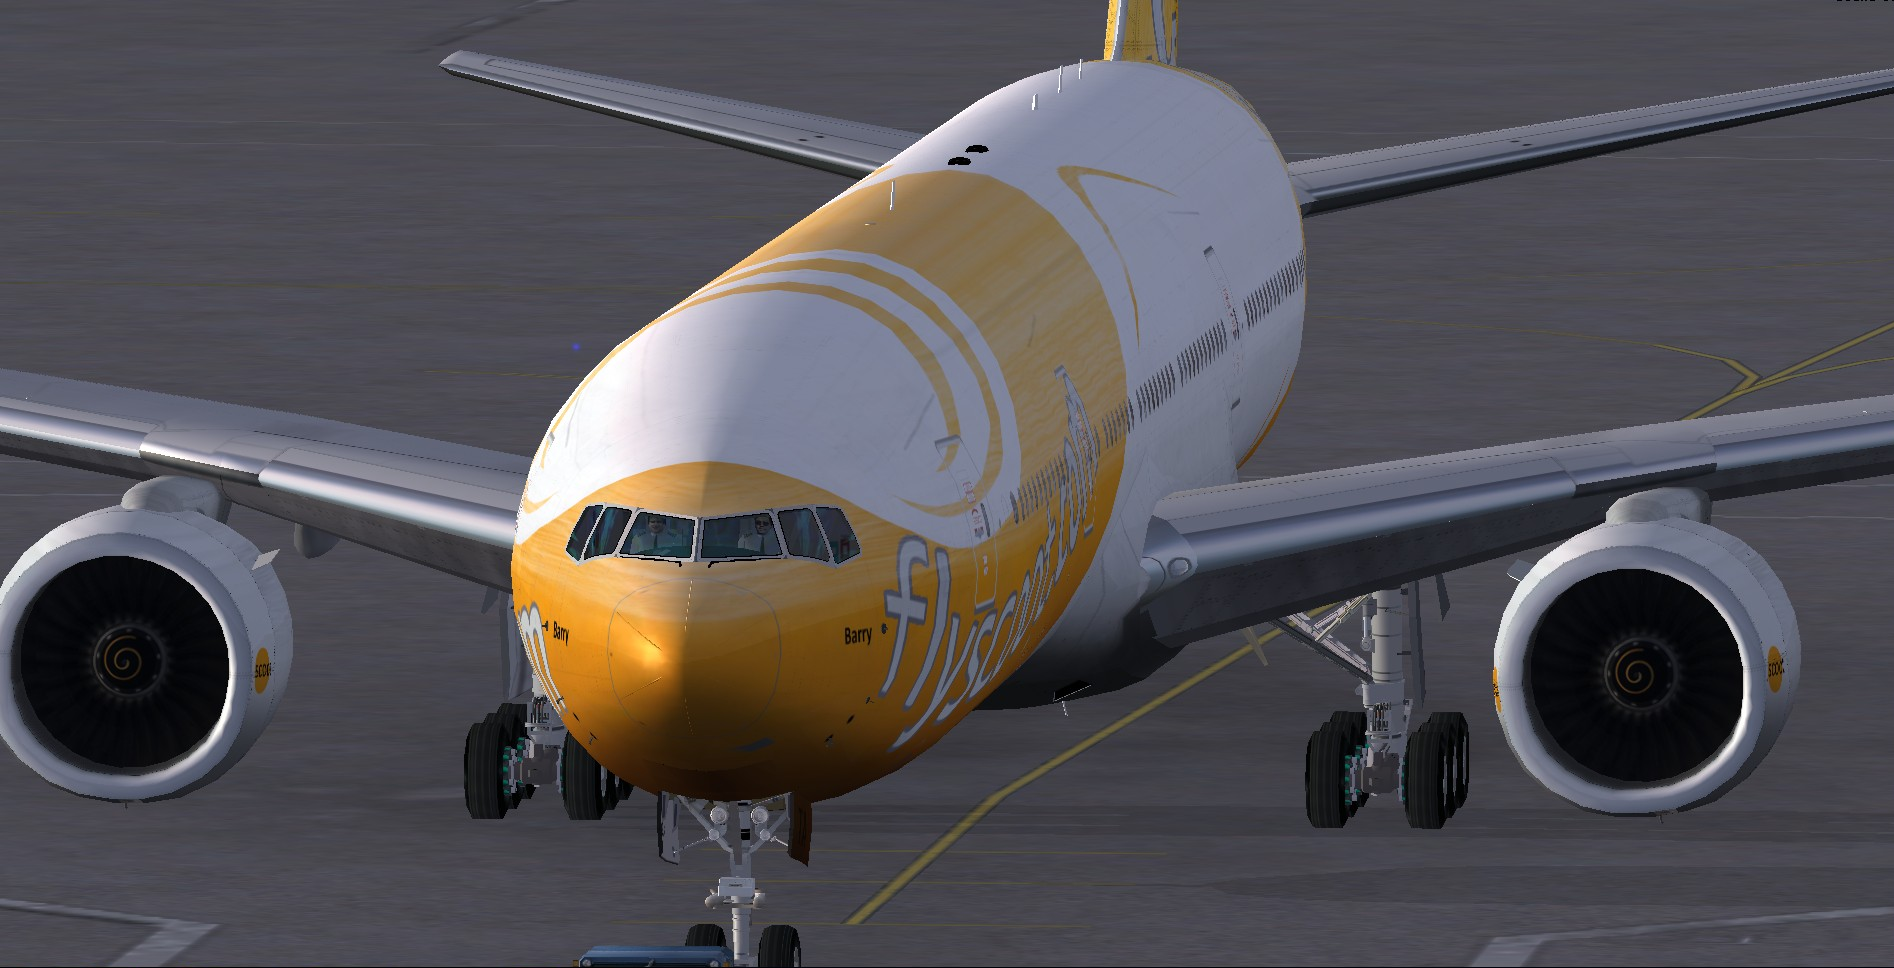 Fsx A350 Freeware With Vc